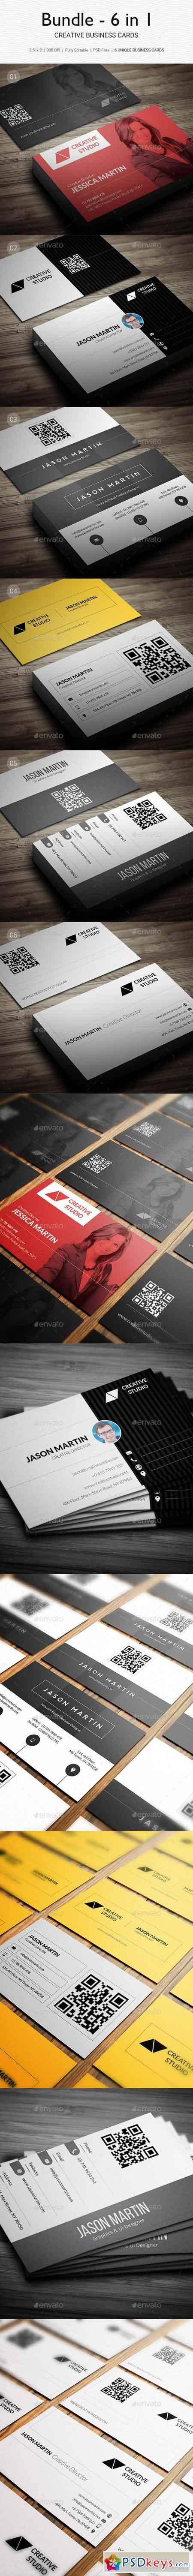 Bundle - 6 in 1 - Creative Business Cards - B29 20465912